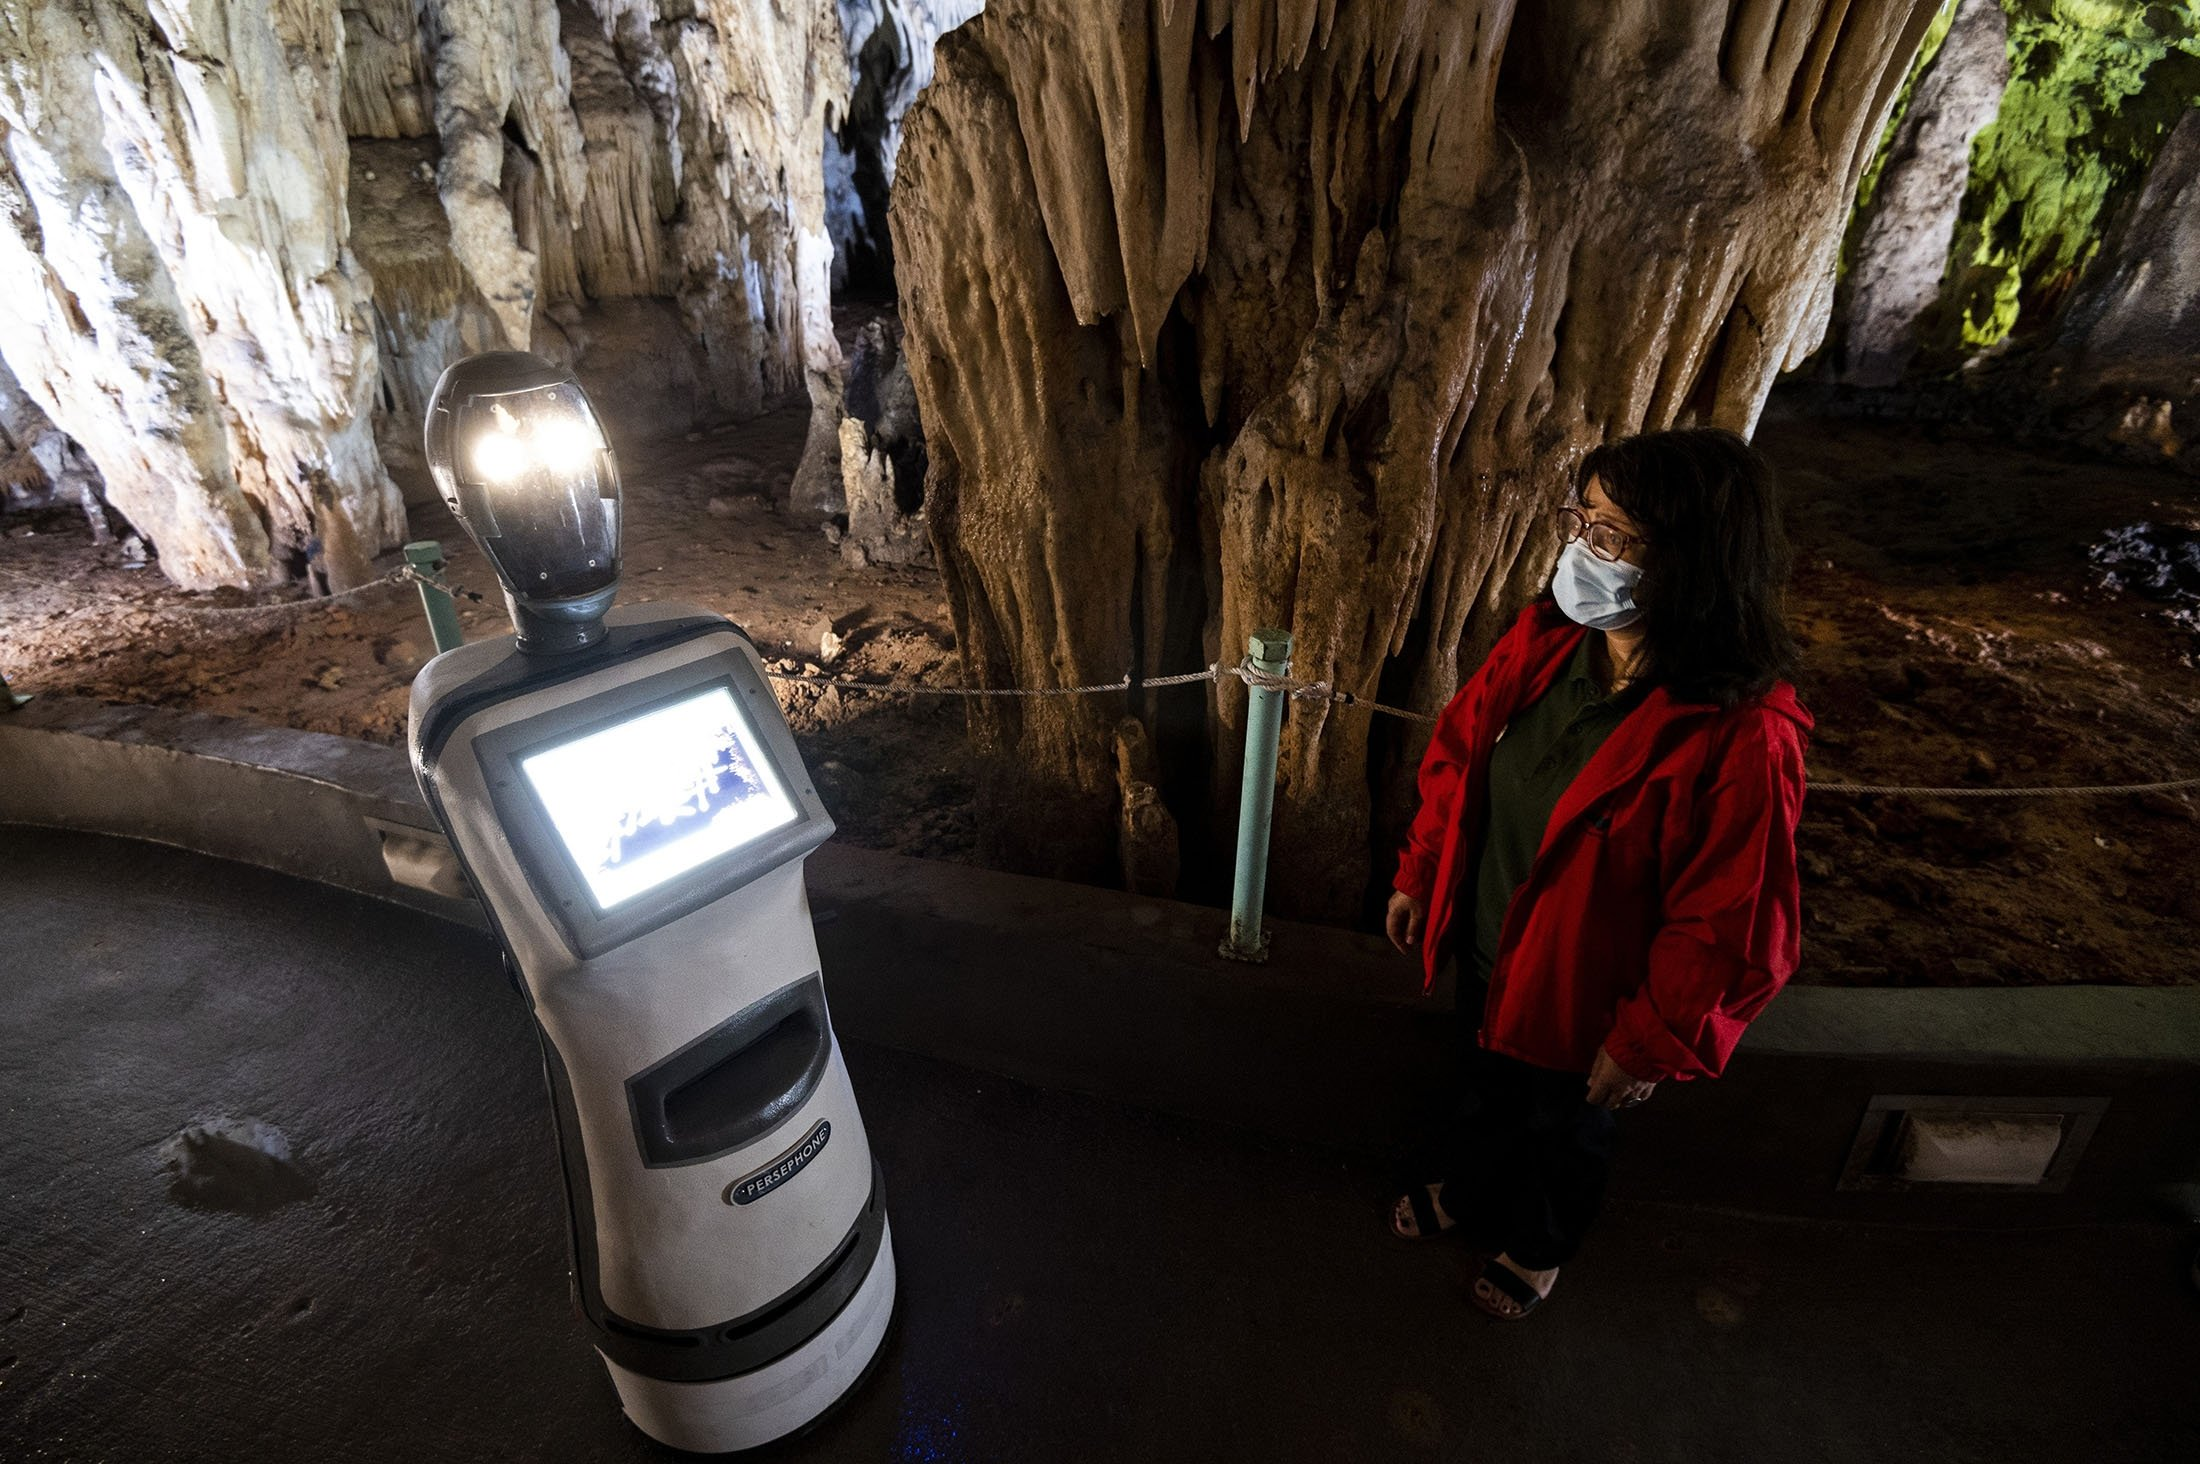 A guide programs Persephone inside Alistrati cave, about 135 kilometers (84 miles) northeast of Thessaloniki, Greece, Aug. 2, 2021. (AP Photo)